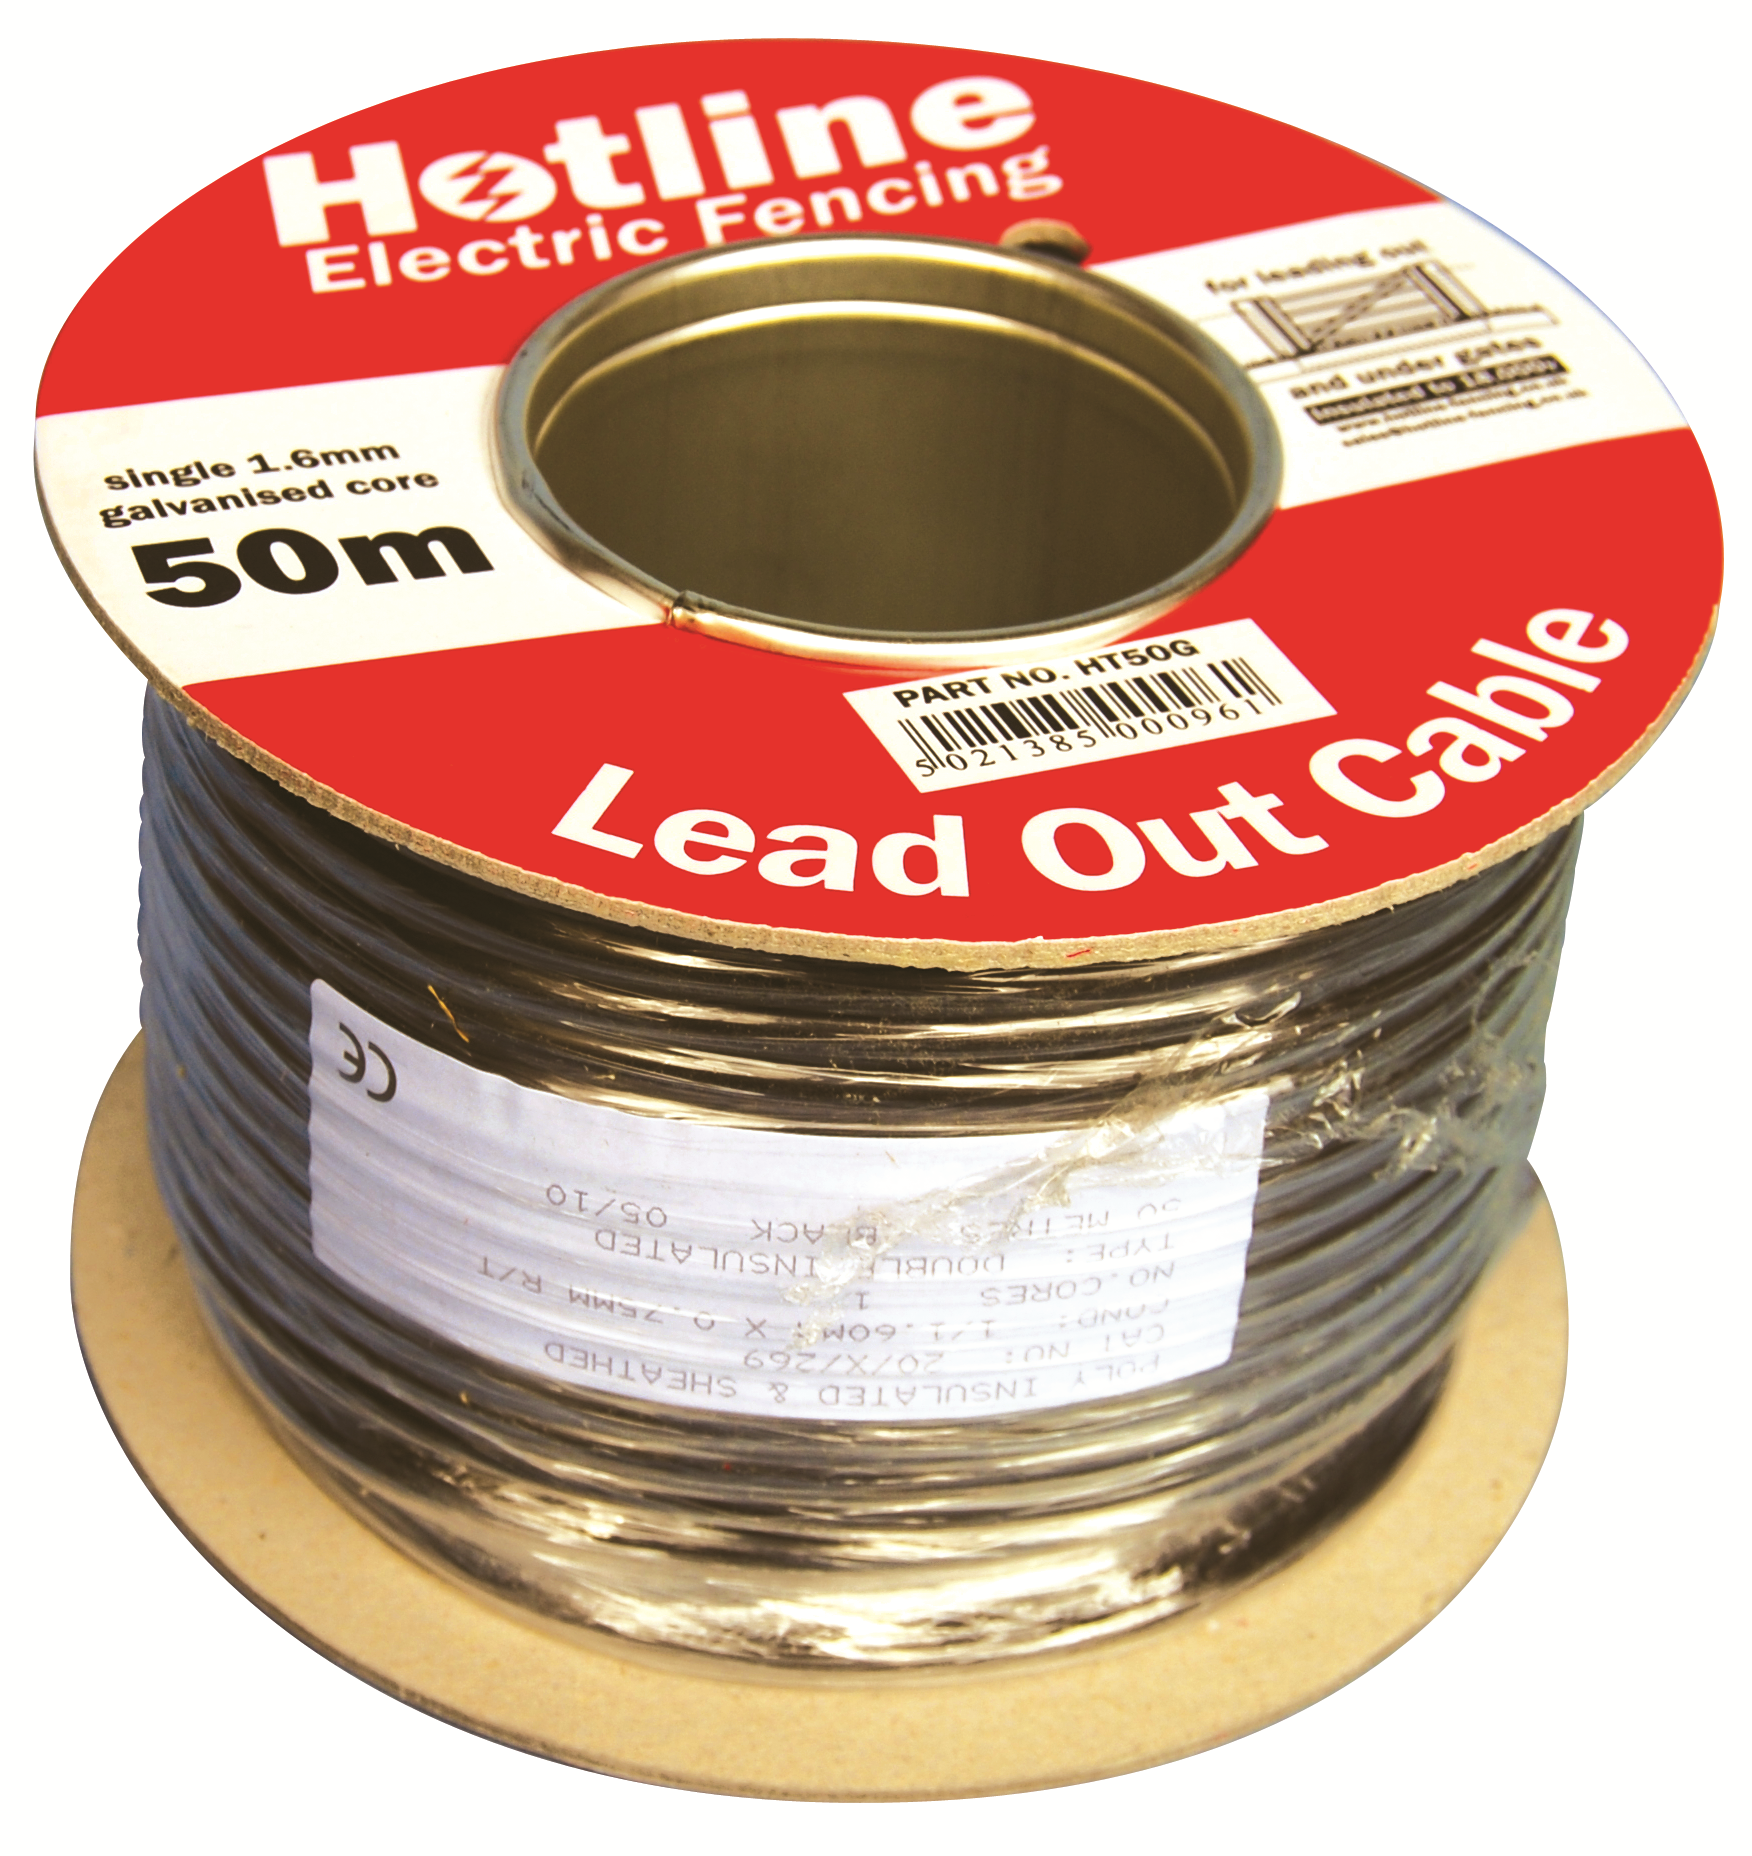 50m Lead Out Cable (HT50/G)